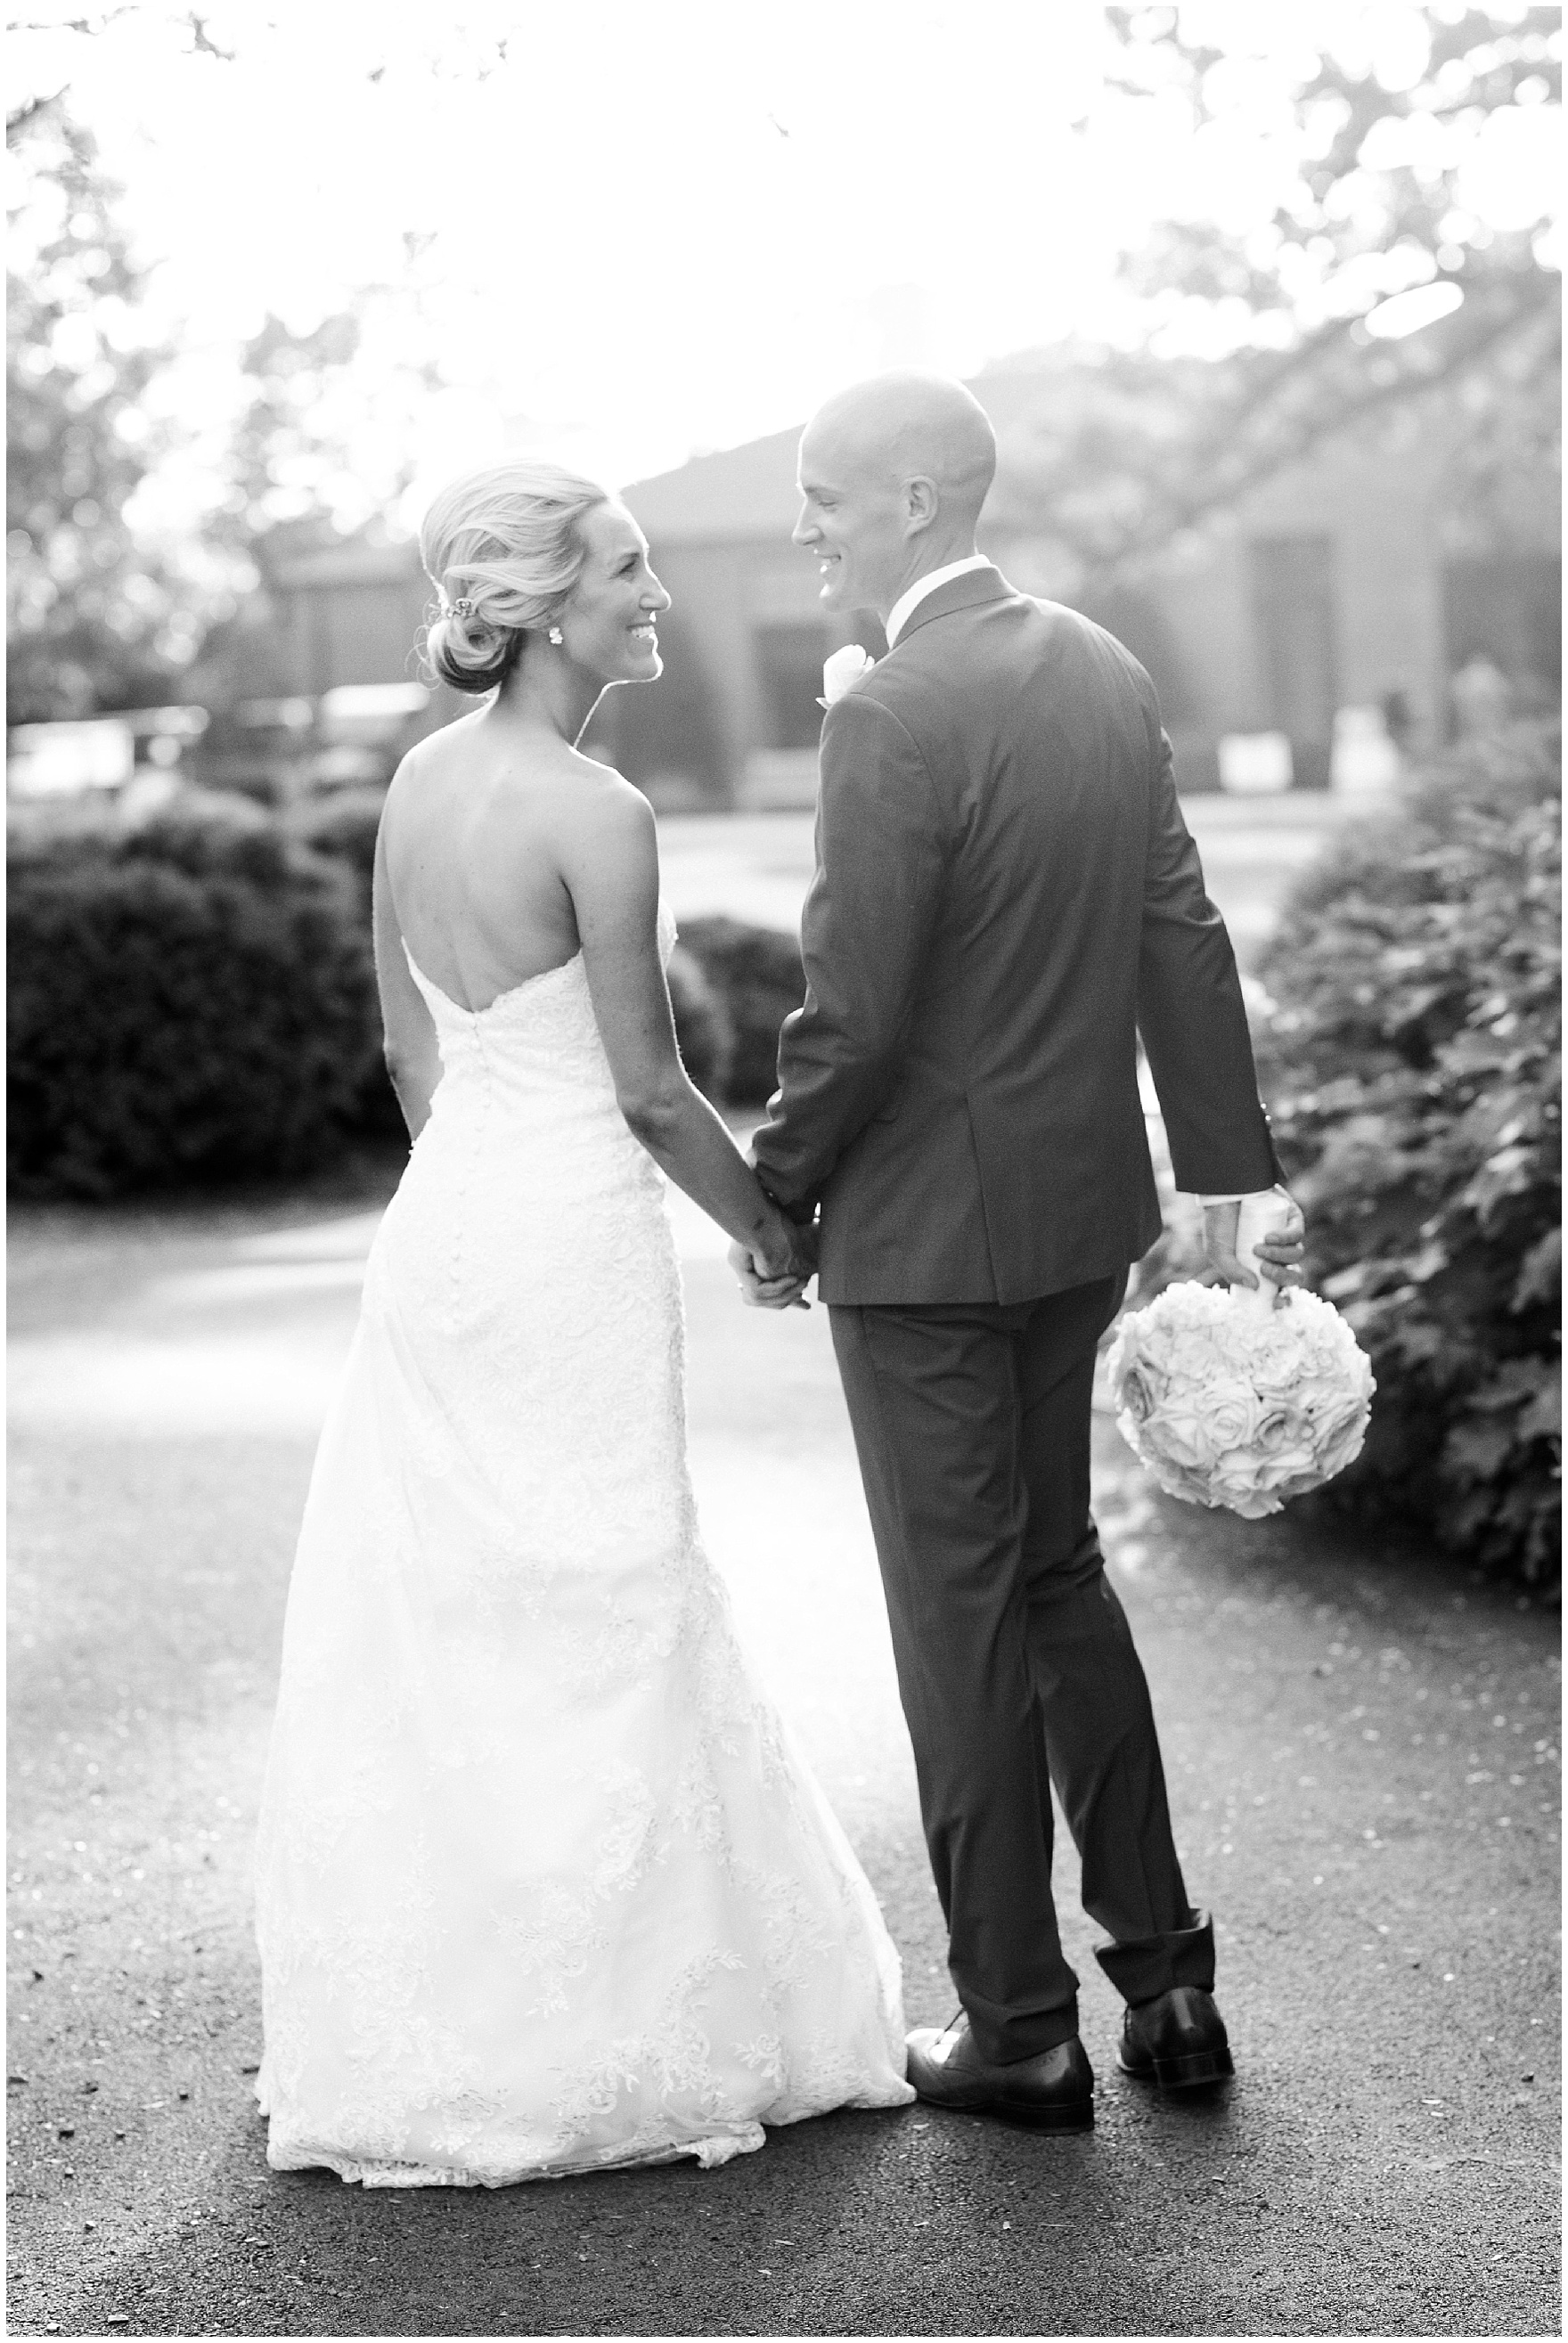 The bride and groom pose for portraits at Cantigny Park for a St. Josephs Downers Grove Pinstripes Oak Brook, Illinois wedding.